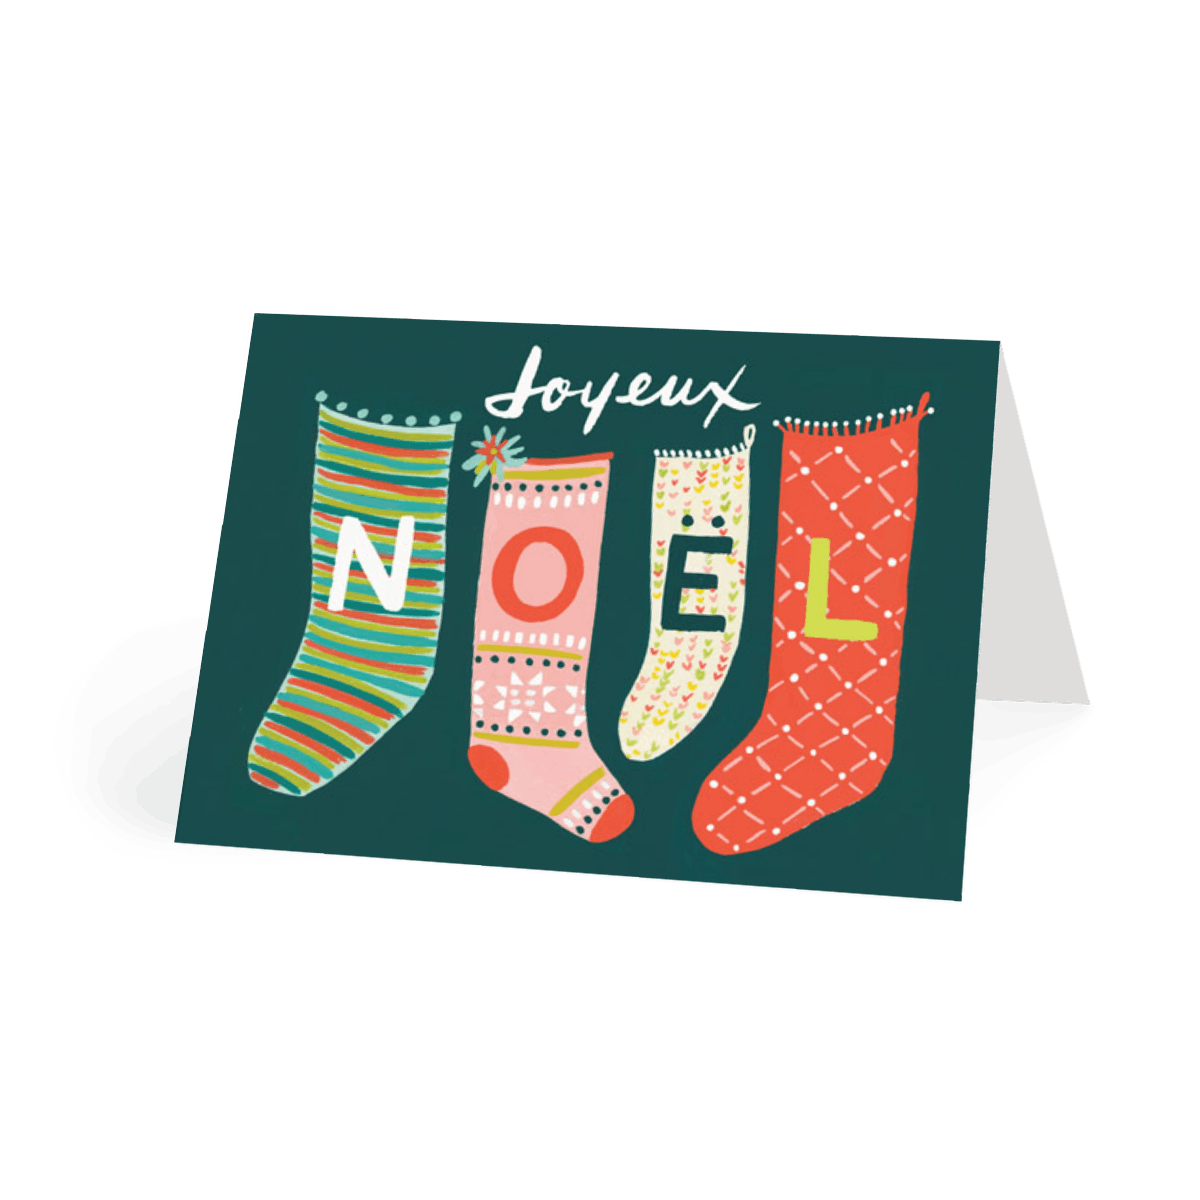 Https%3a%2f%2fwww.papier.com%2fproduct image%2f8210%2f14%2fchristmas stockings 2034 avant 1541432189.png?ixlib=rb 1.1